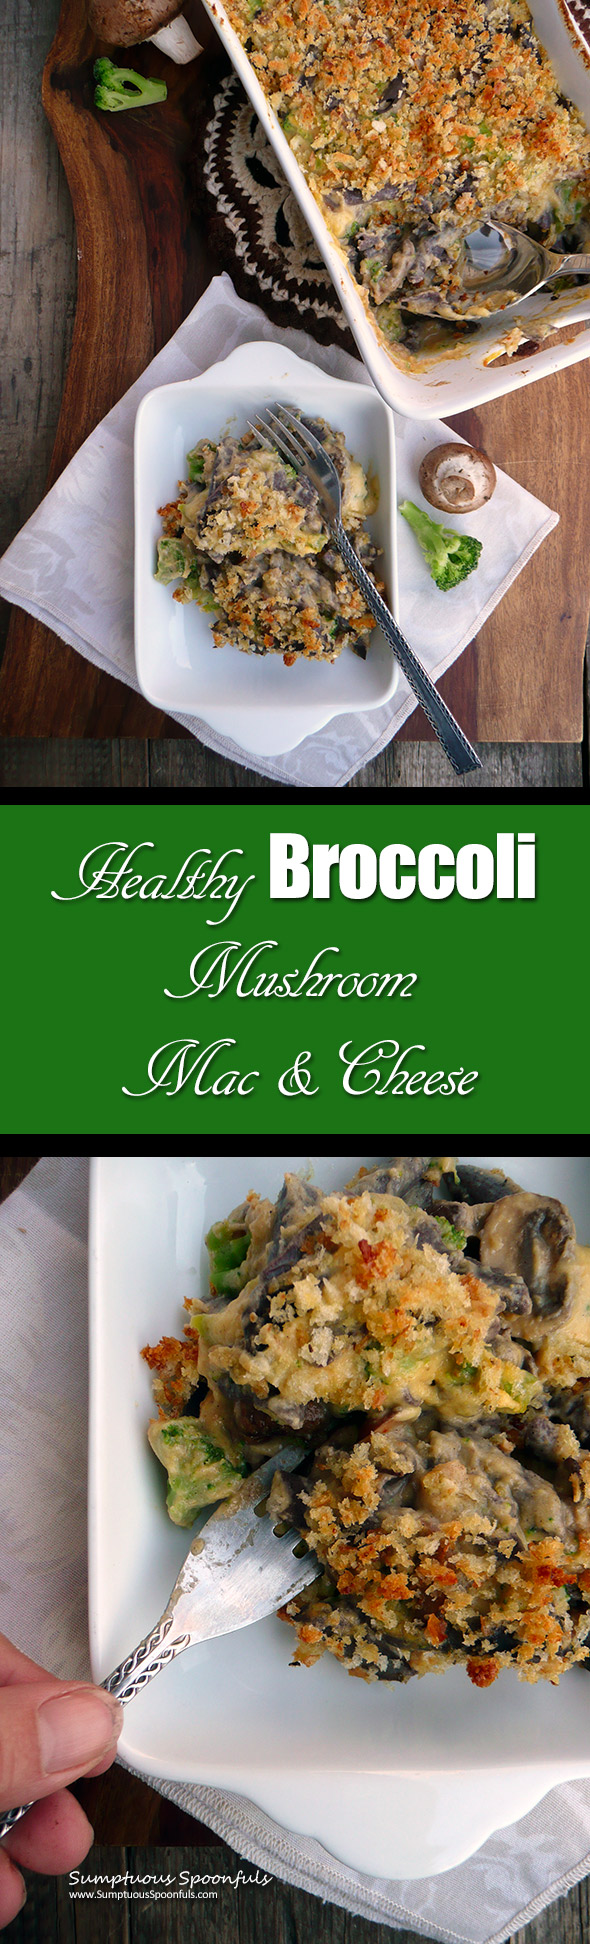 Healthy Broccoli Mushroom Mac & Cheese with black bean penne & cauli-carrot 3-cheese sauce ~ Sumptuous Spoonfuls #healthy #comfortfood #recipe